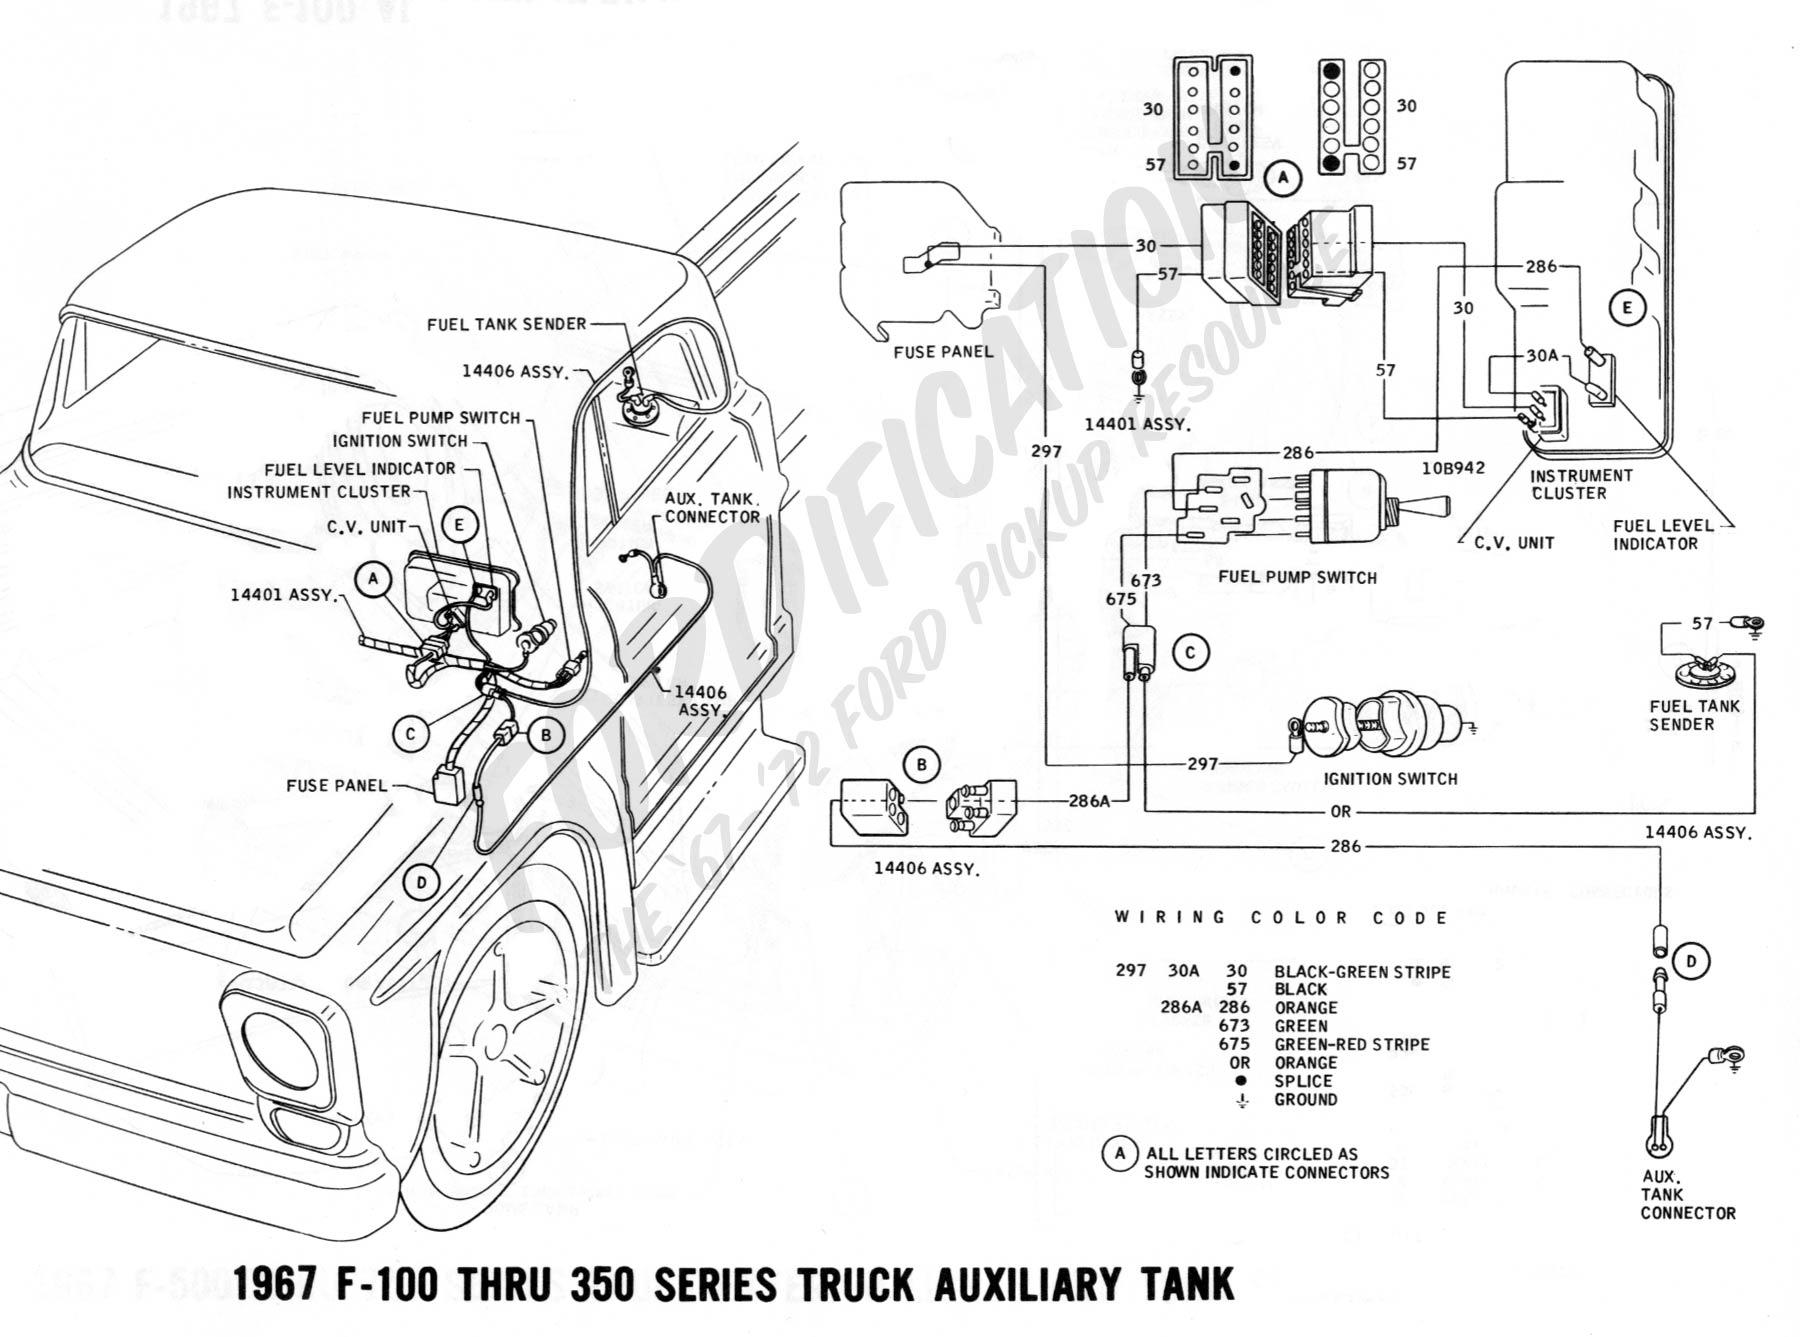 wiring 1967auxtank ford truck technical drawings and schematics section h wiring 1994 ford f250 wiring diagram at readyjetset.co